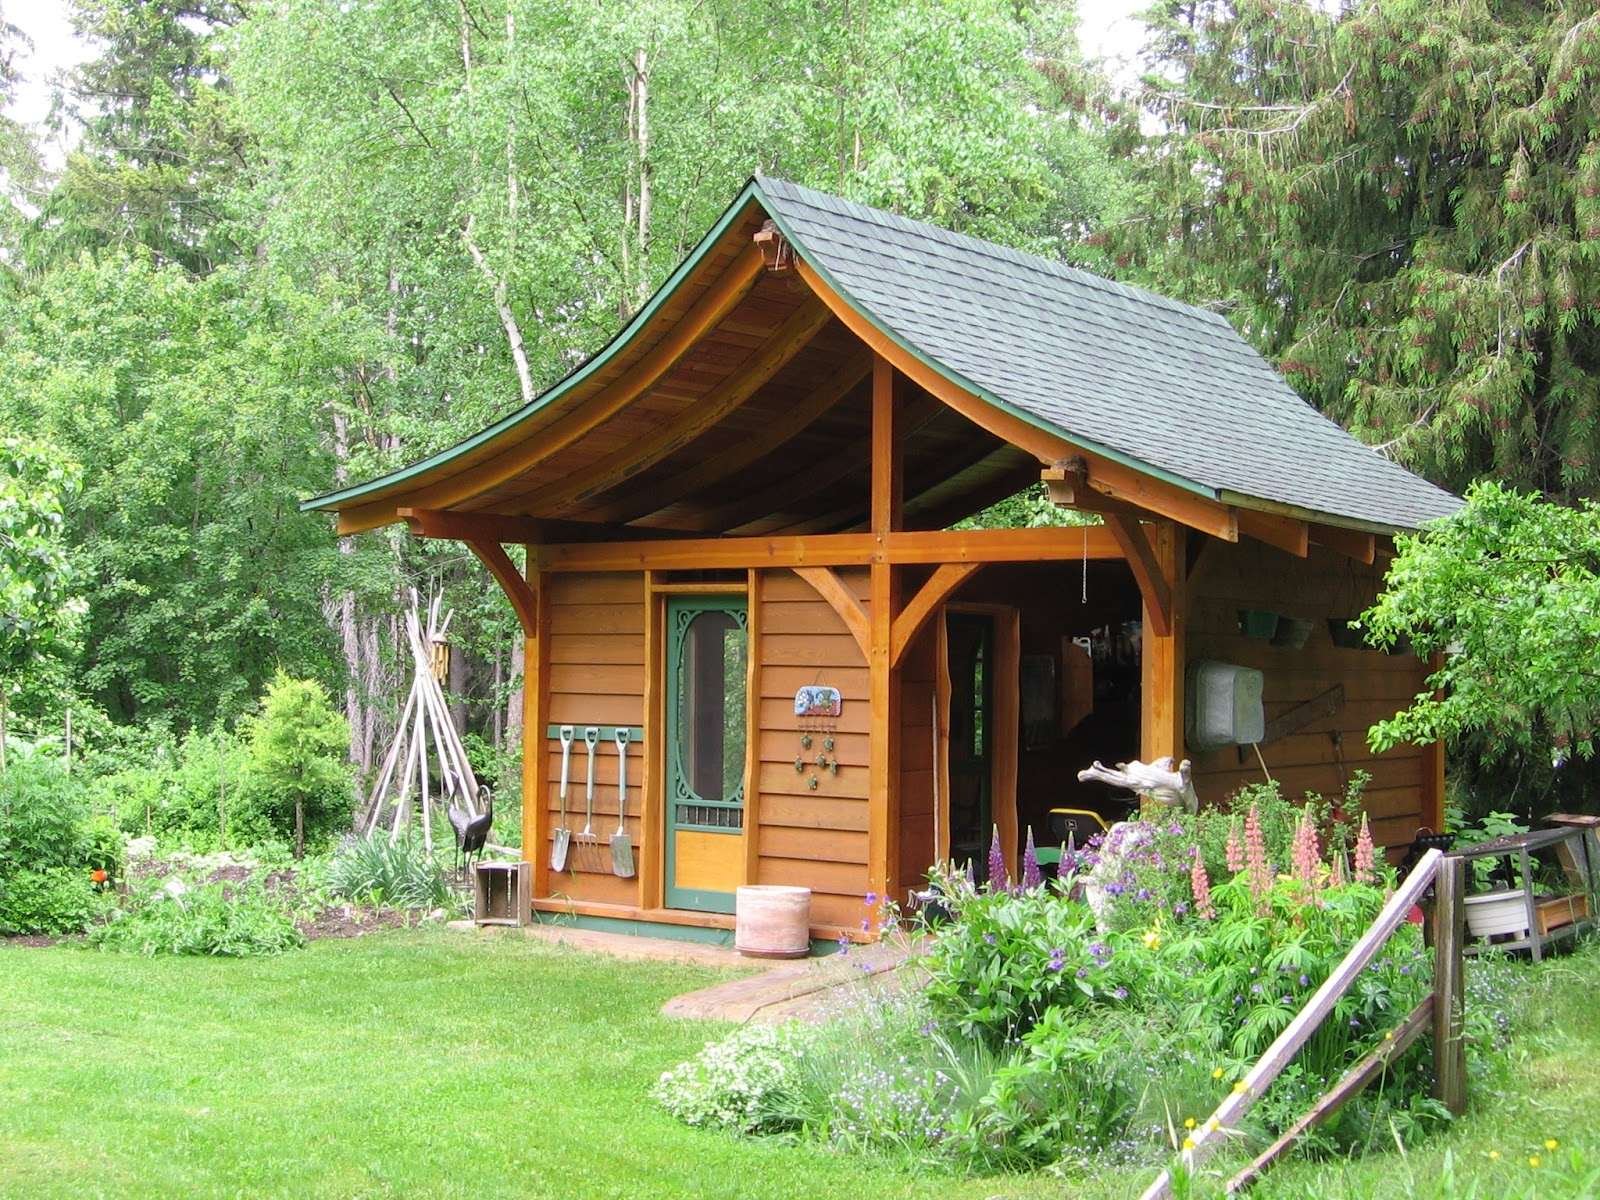 Wood-Mizer LLC: Building Backyard Projects with Lumber ...